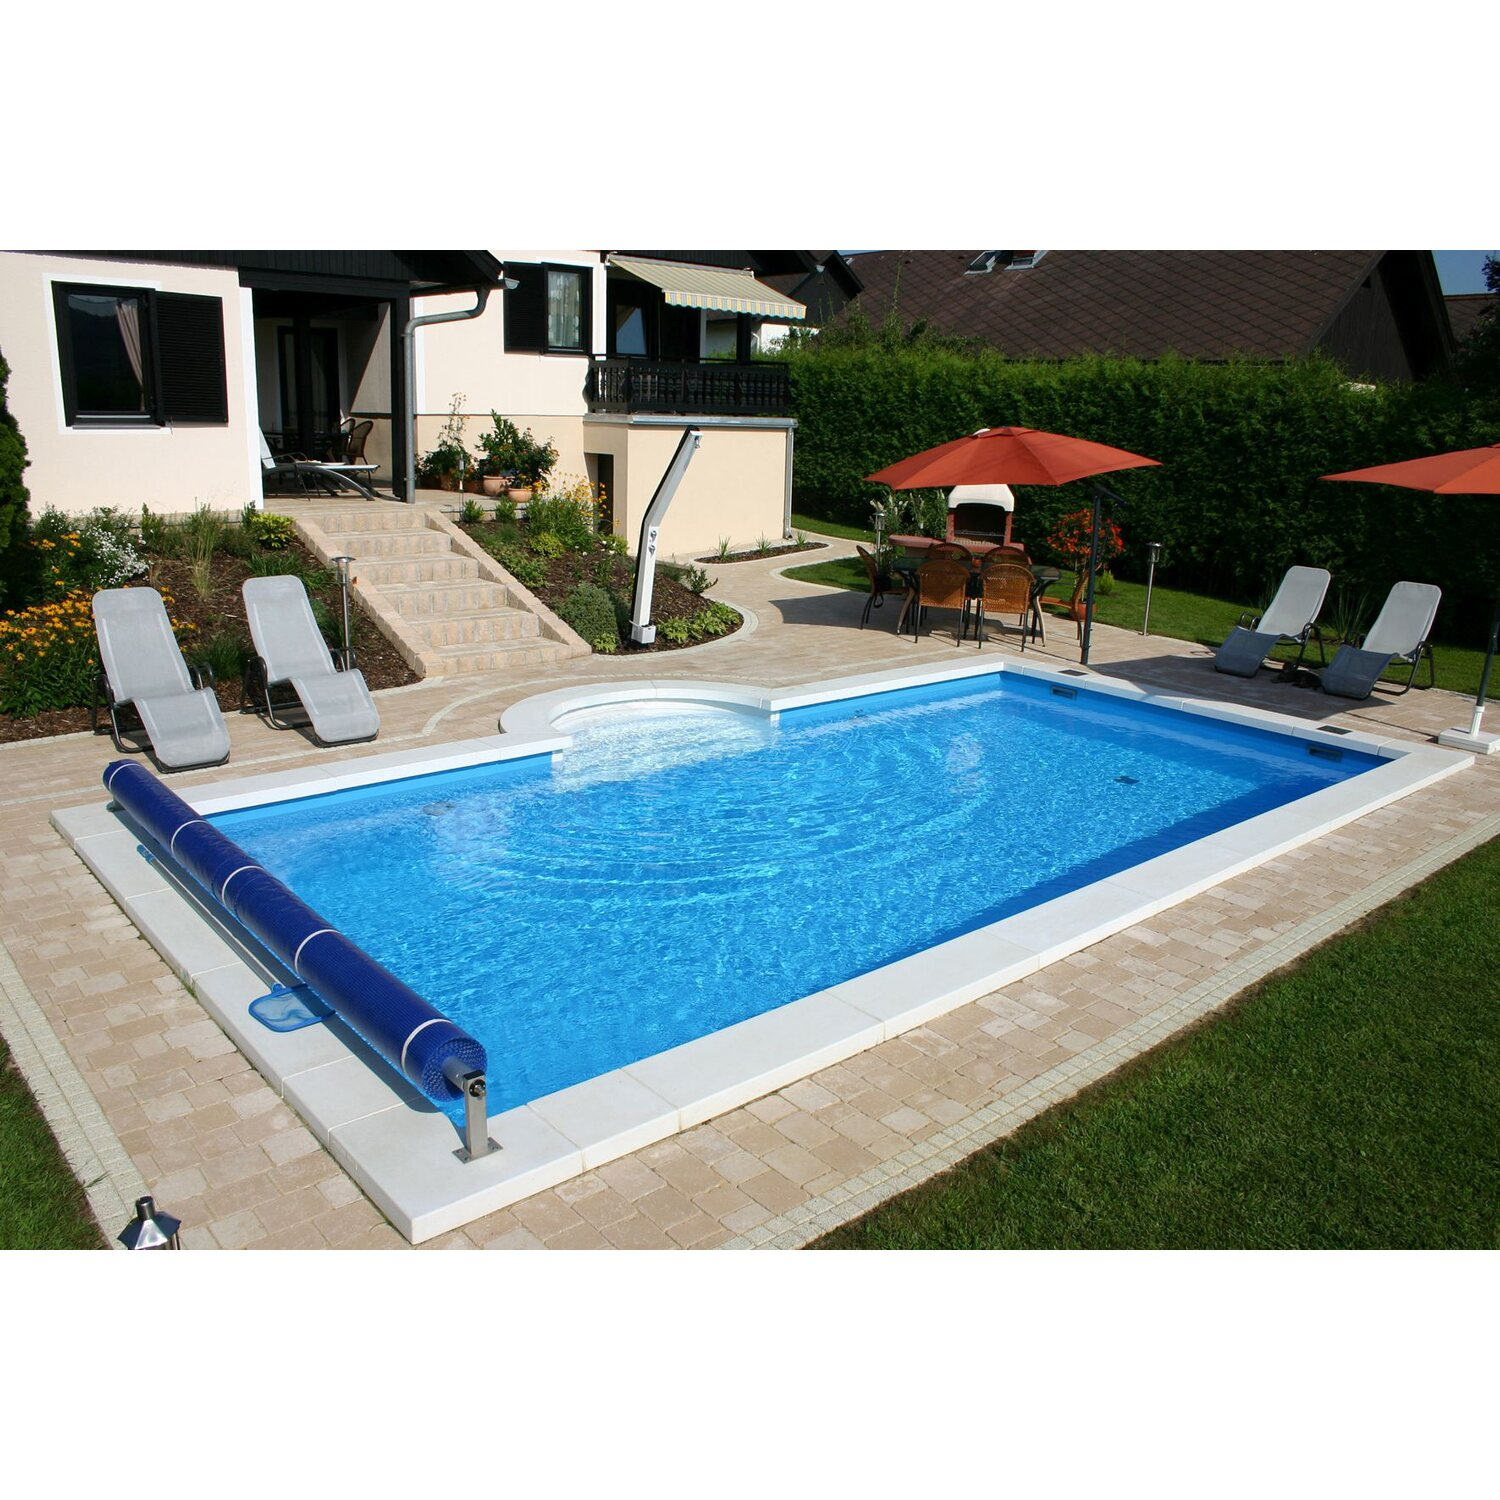 Pool set rechteckig ws99 hitoiro for Obi intex pool